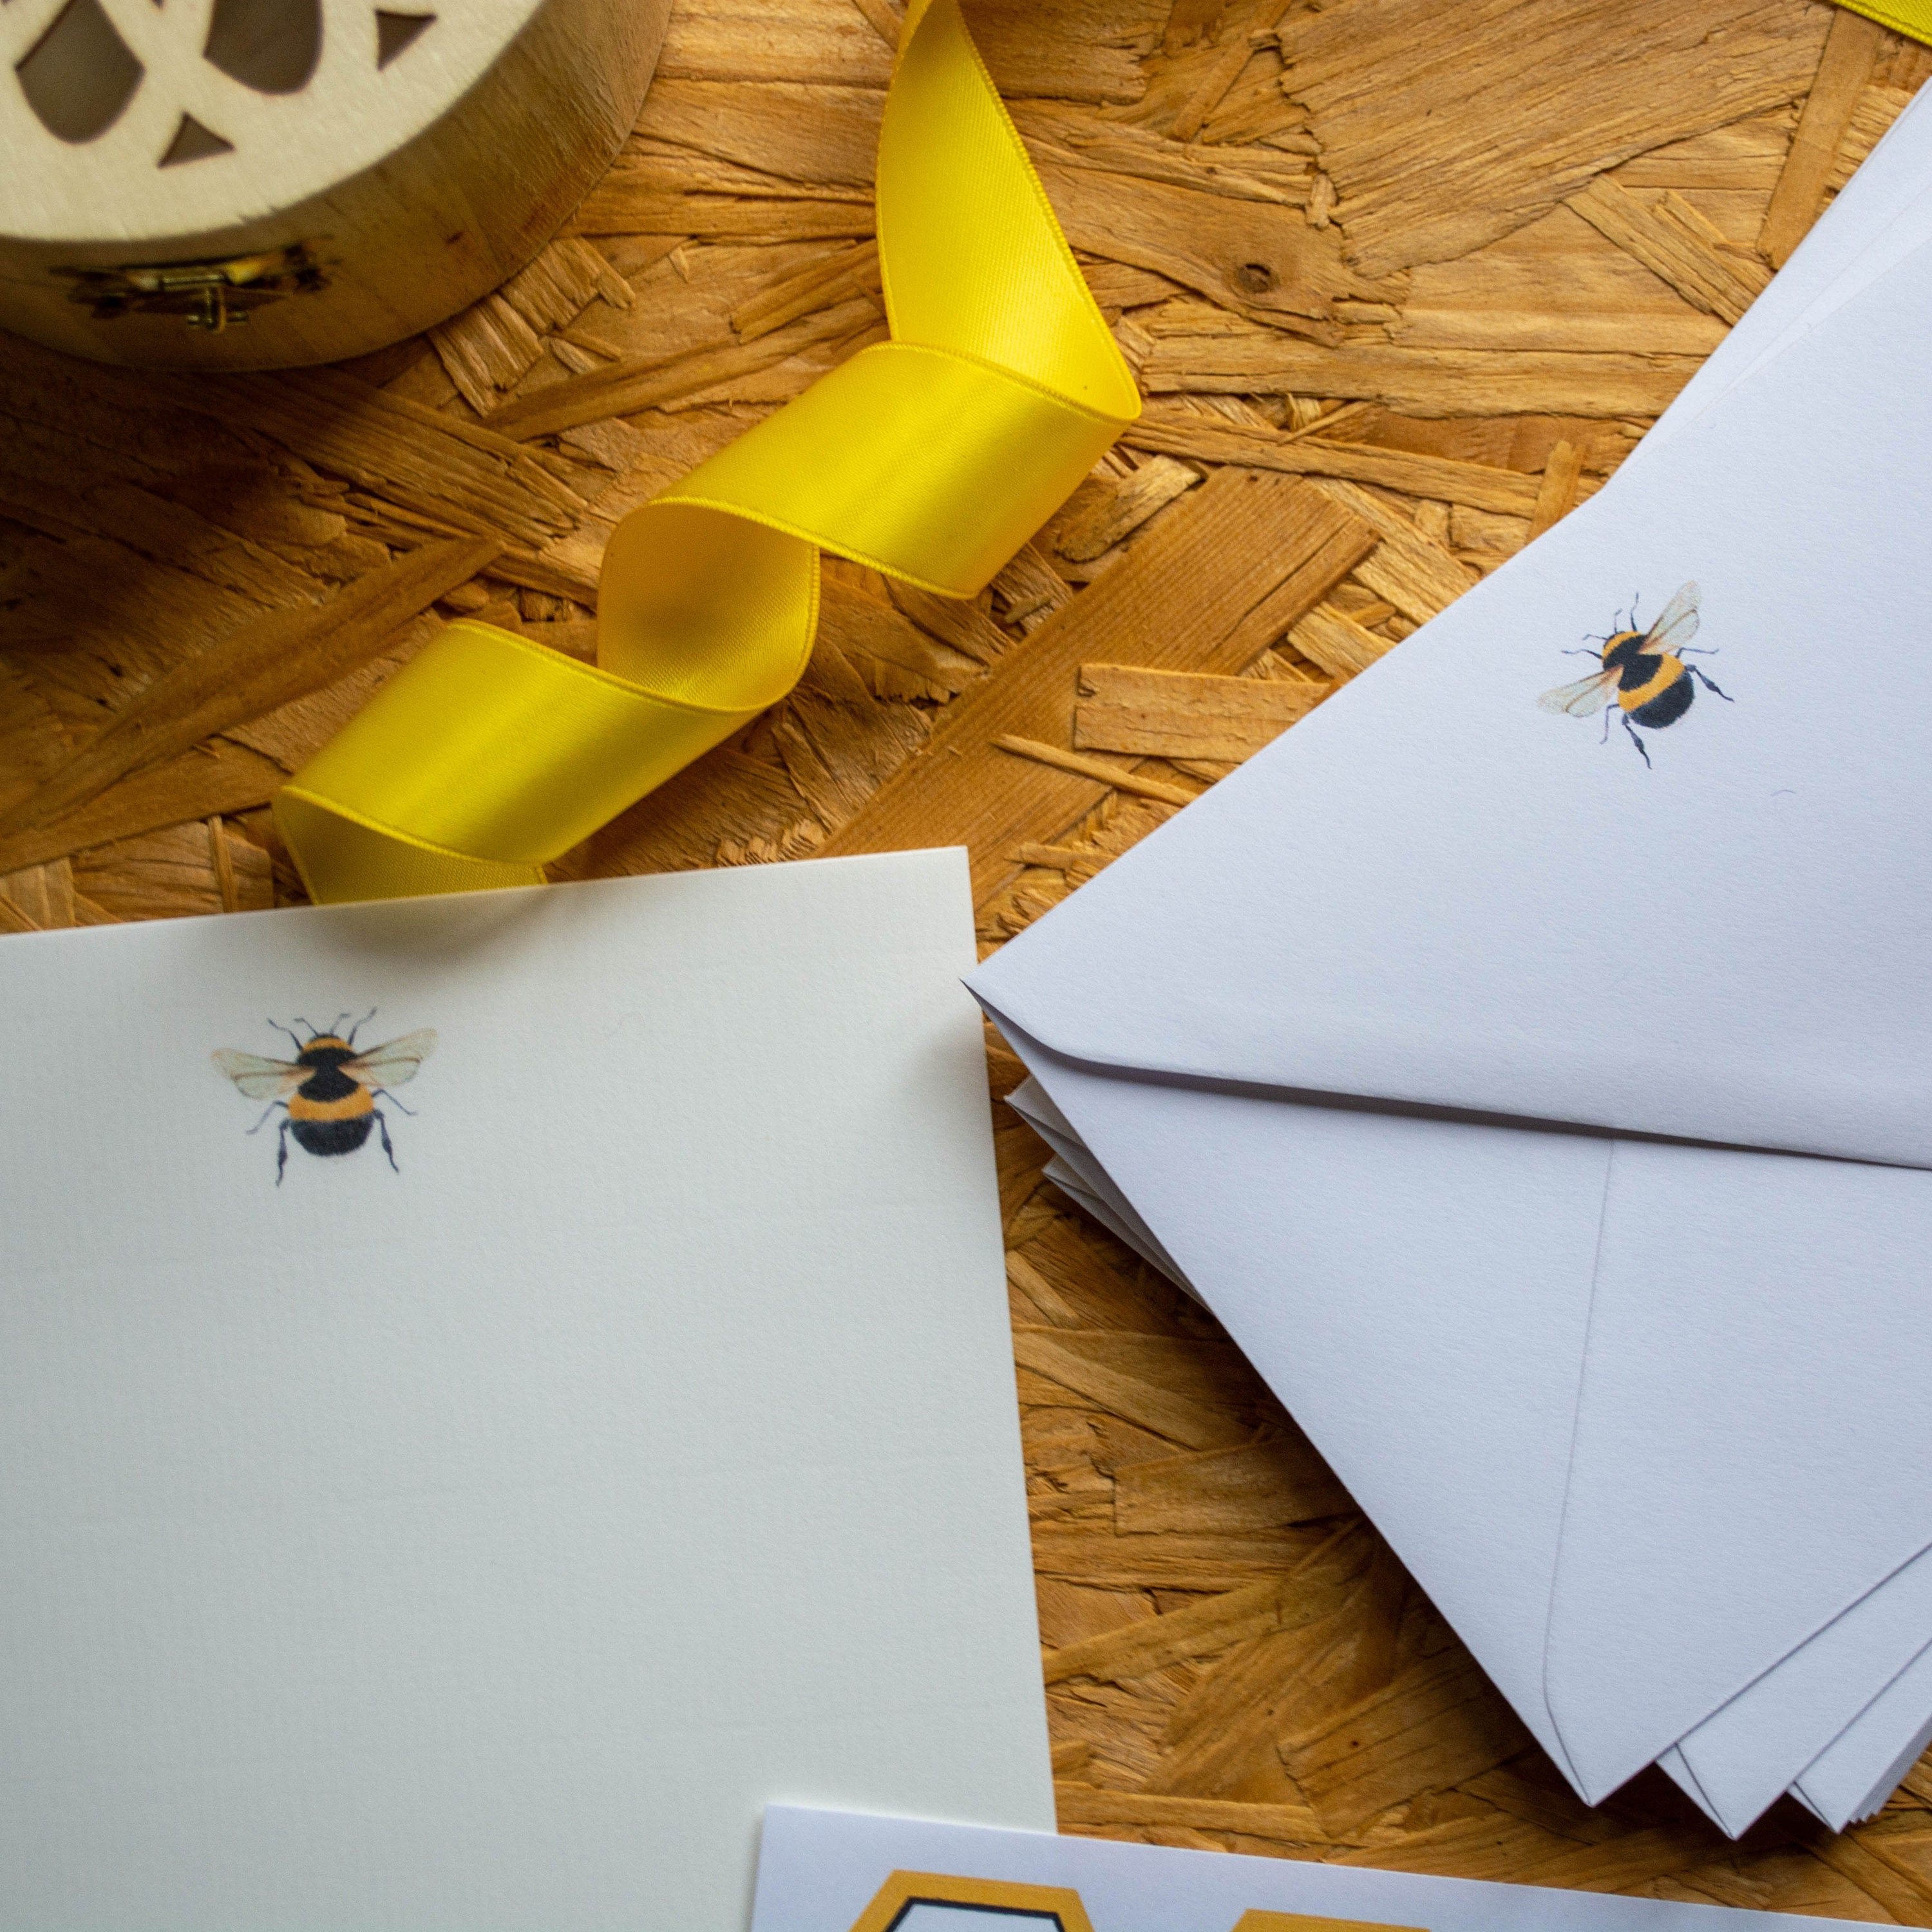 Notecards in Luxury Gift Box Writing Paper Bumble Bee Writing Set Nature Lover Gift for Christmas Envelopes Letter Seal Stickers